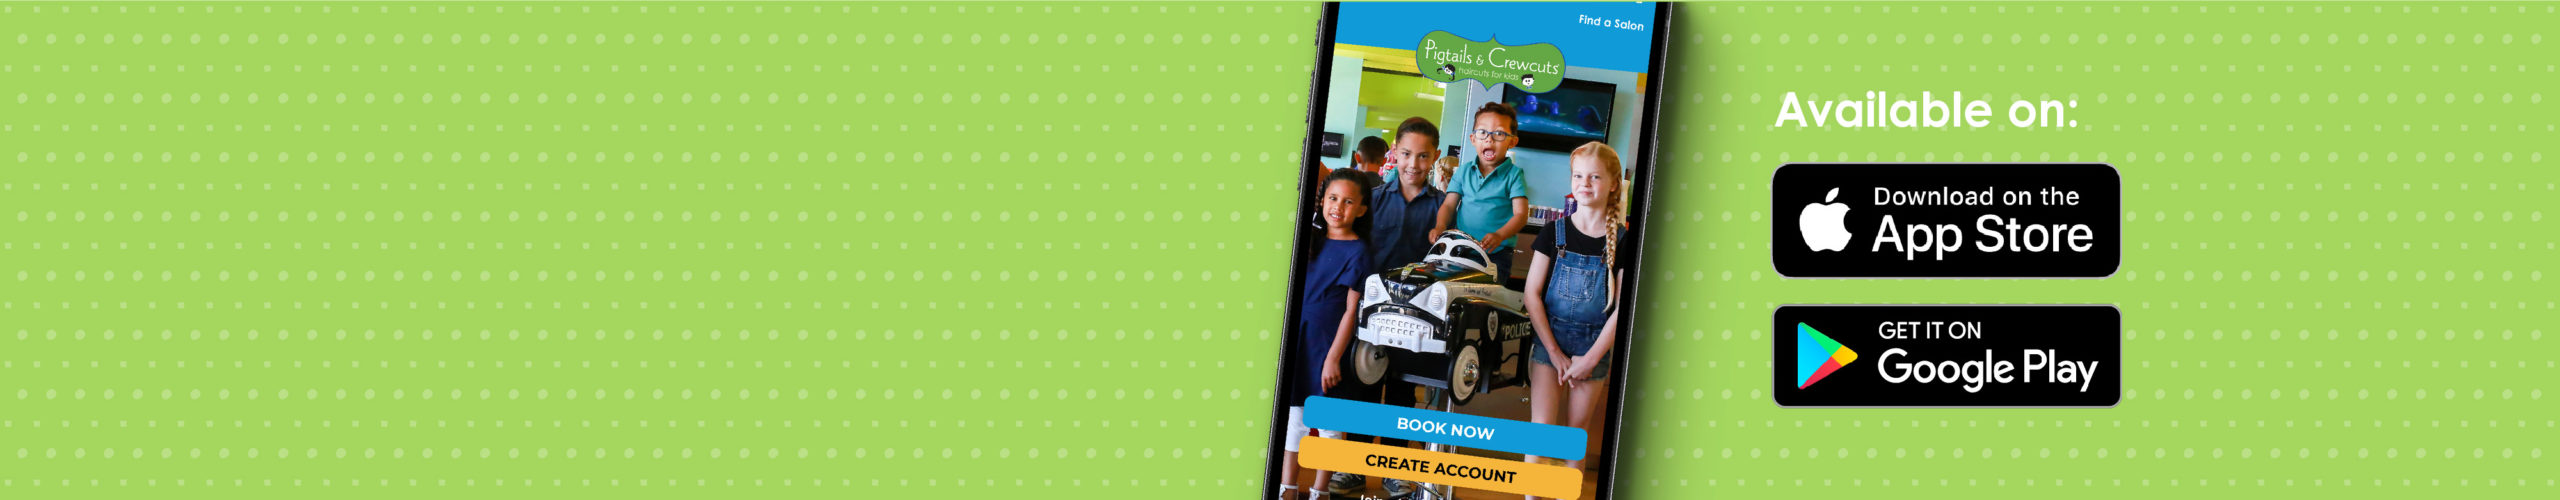 Pigtails & Crewcuts App Feature Image